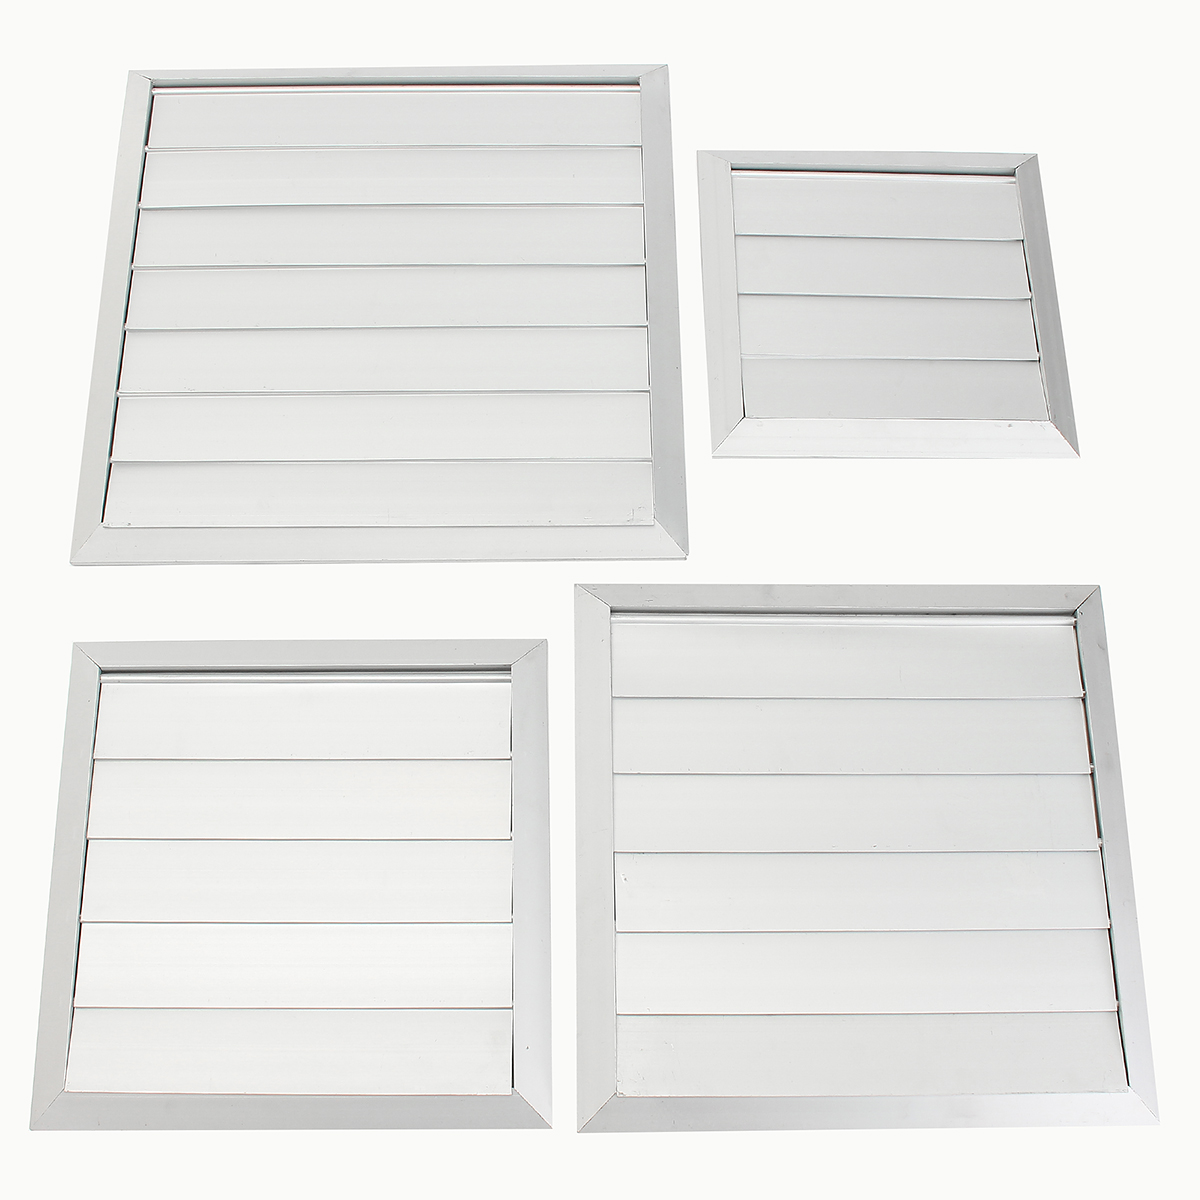 4/5/6/7 Flaps Air Vent Grille Cover Wall Duct Ventilation Louvre Exhaust Hood Hardware Core Vents цена